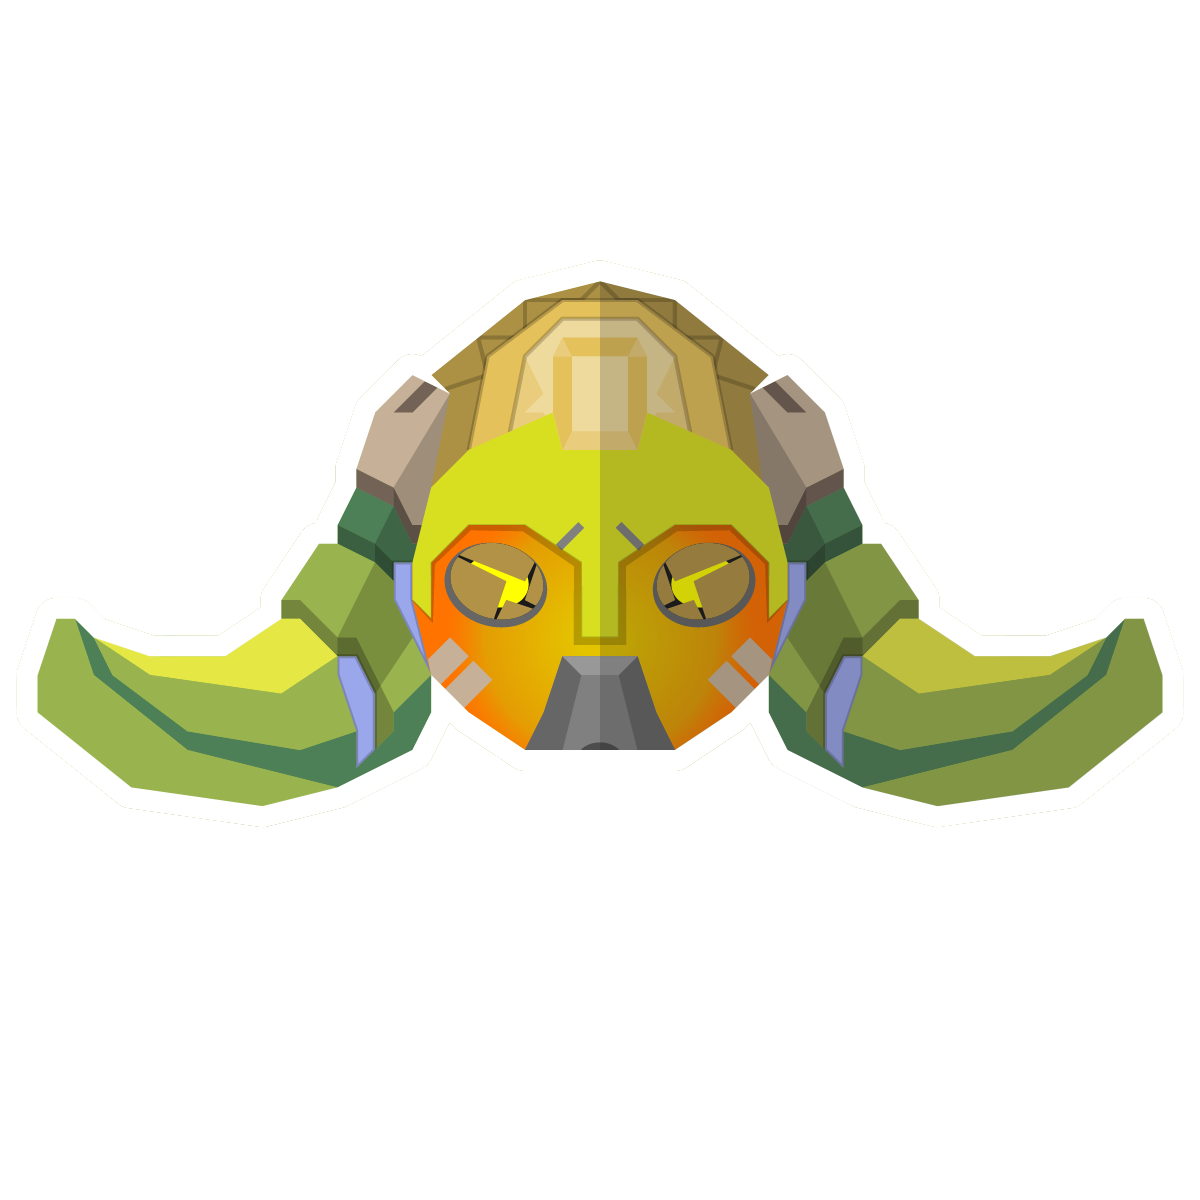 The Heroes Of Overwatch Sticker Pack messages sticker-11